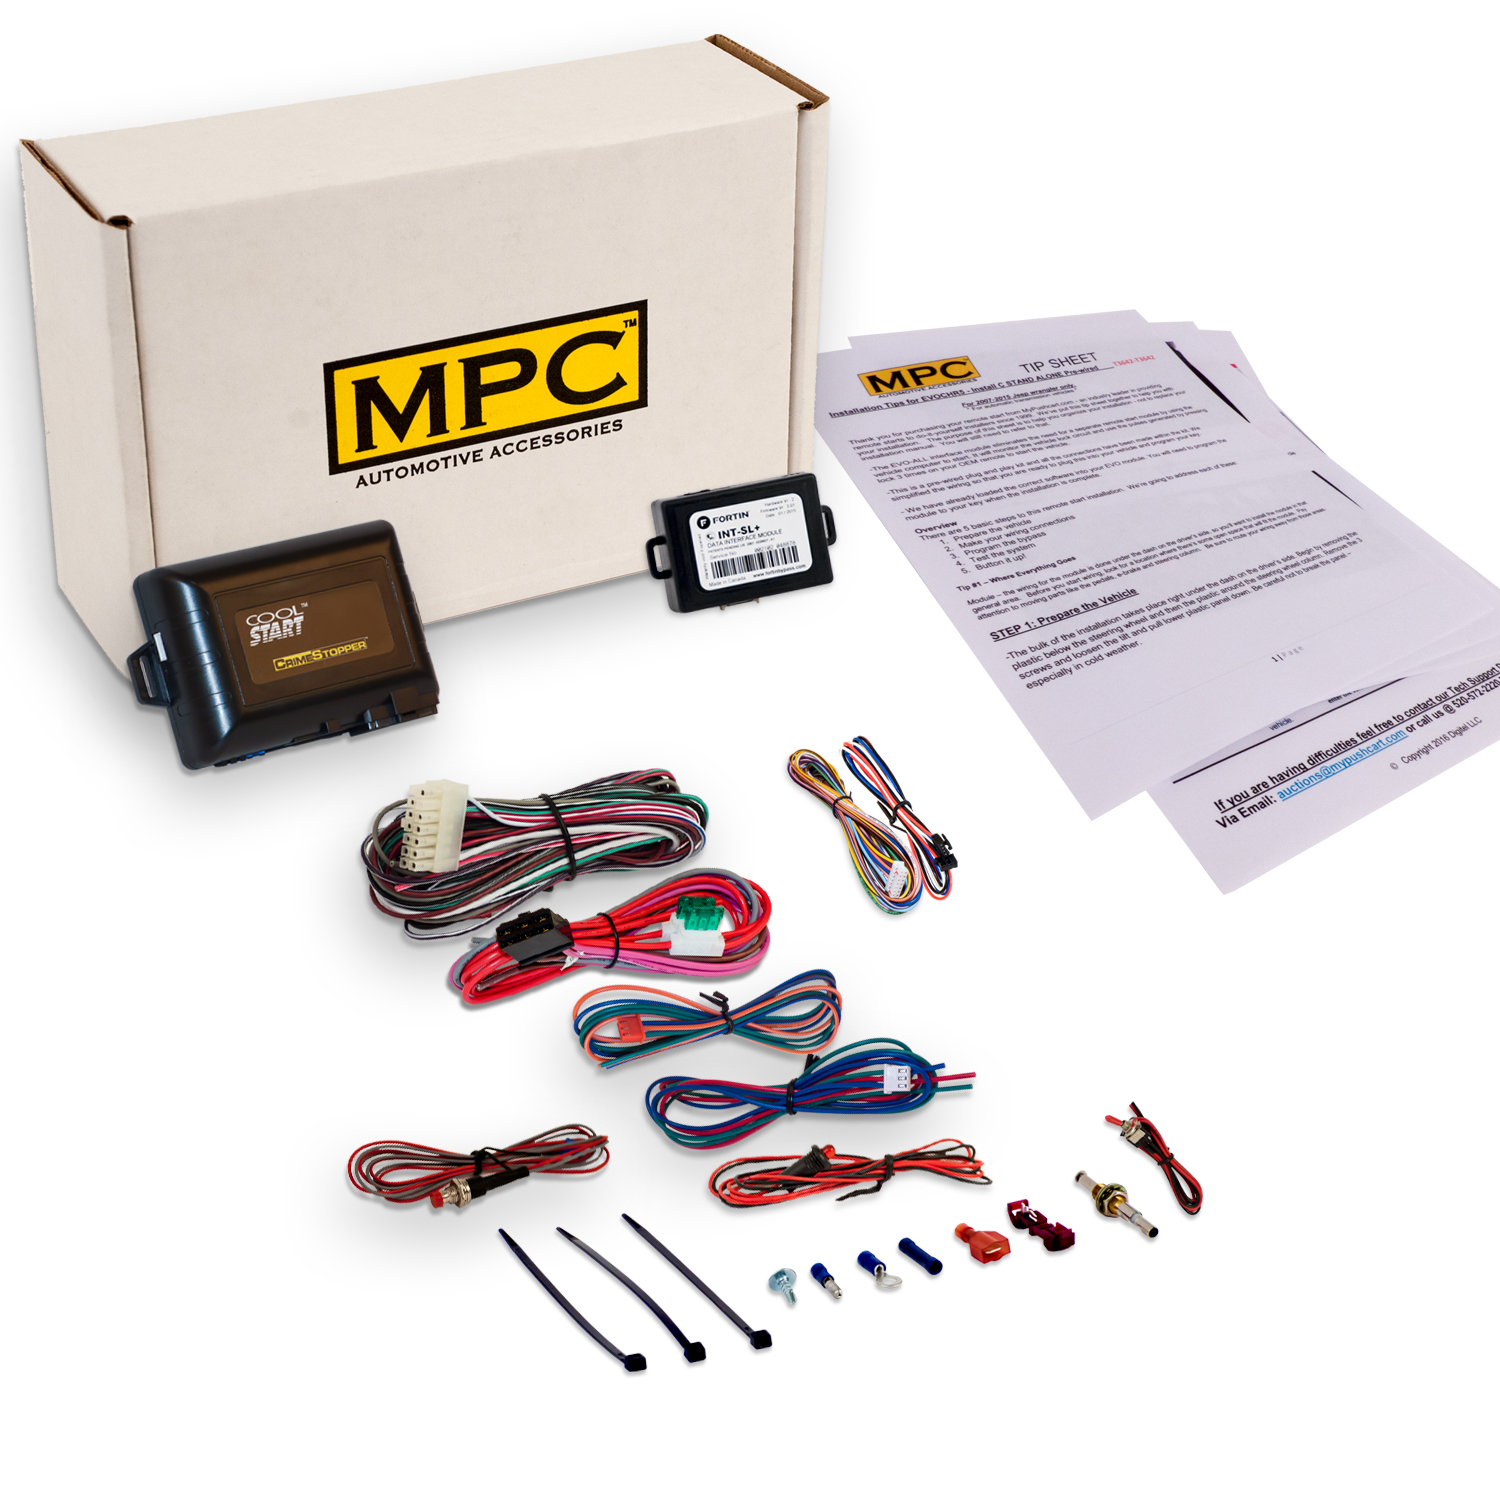 MPC Add On Remote Starter For Select 2000-09 GM - Uses Yo...